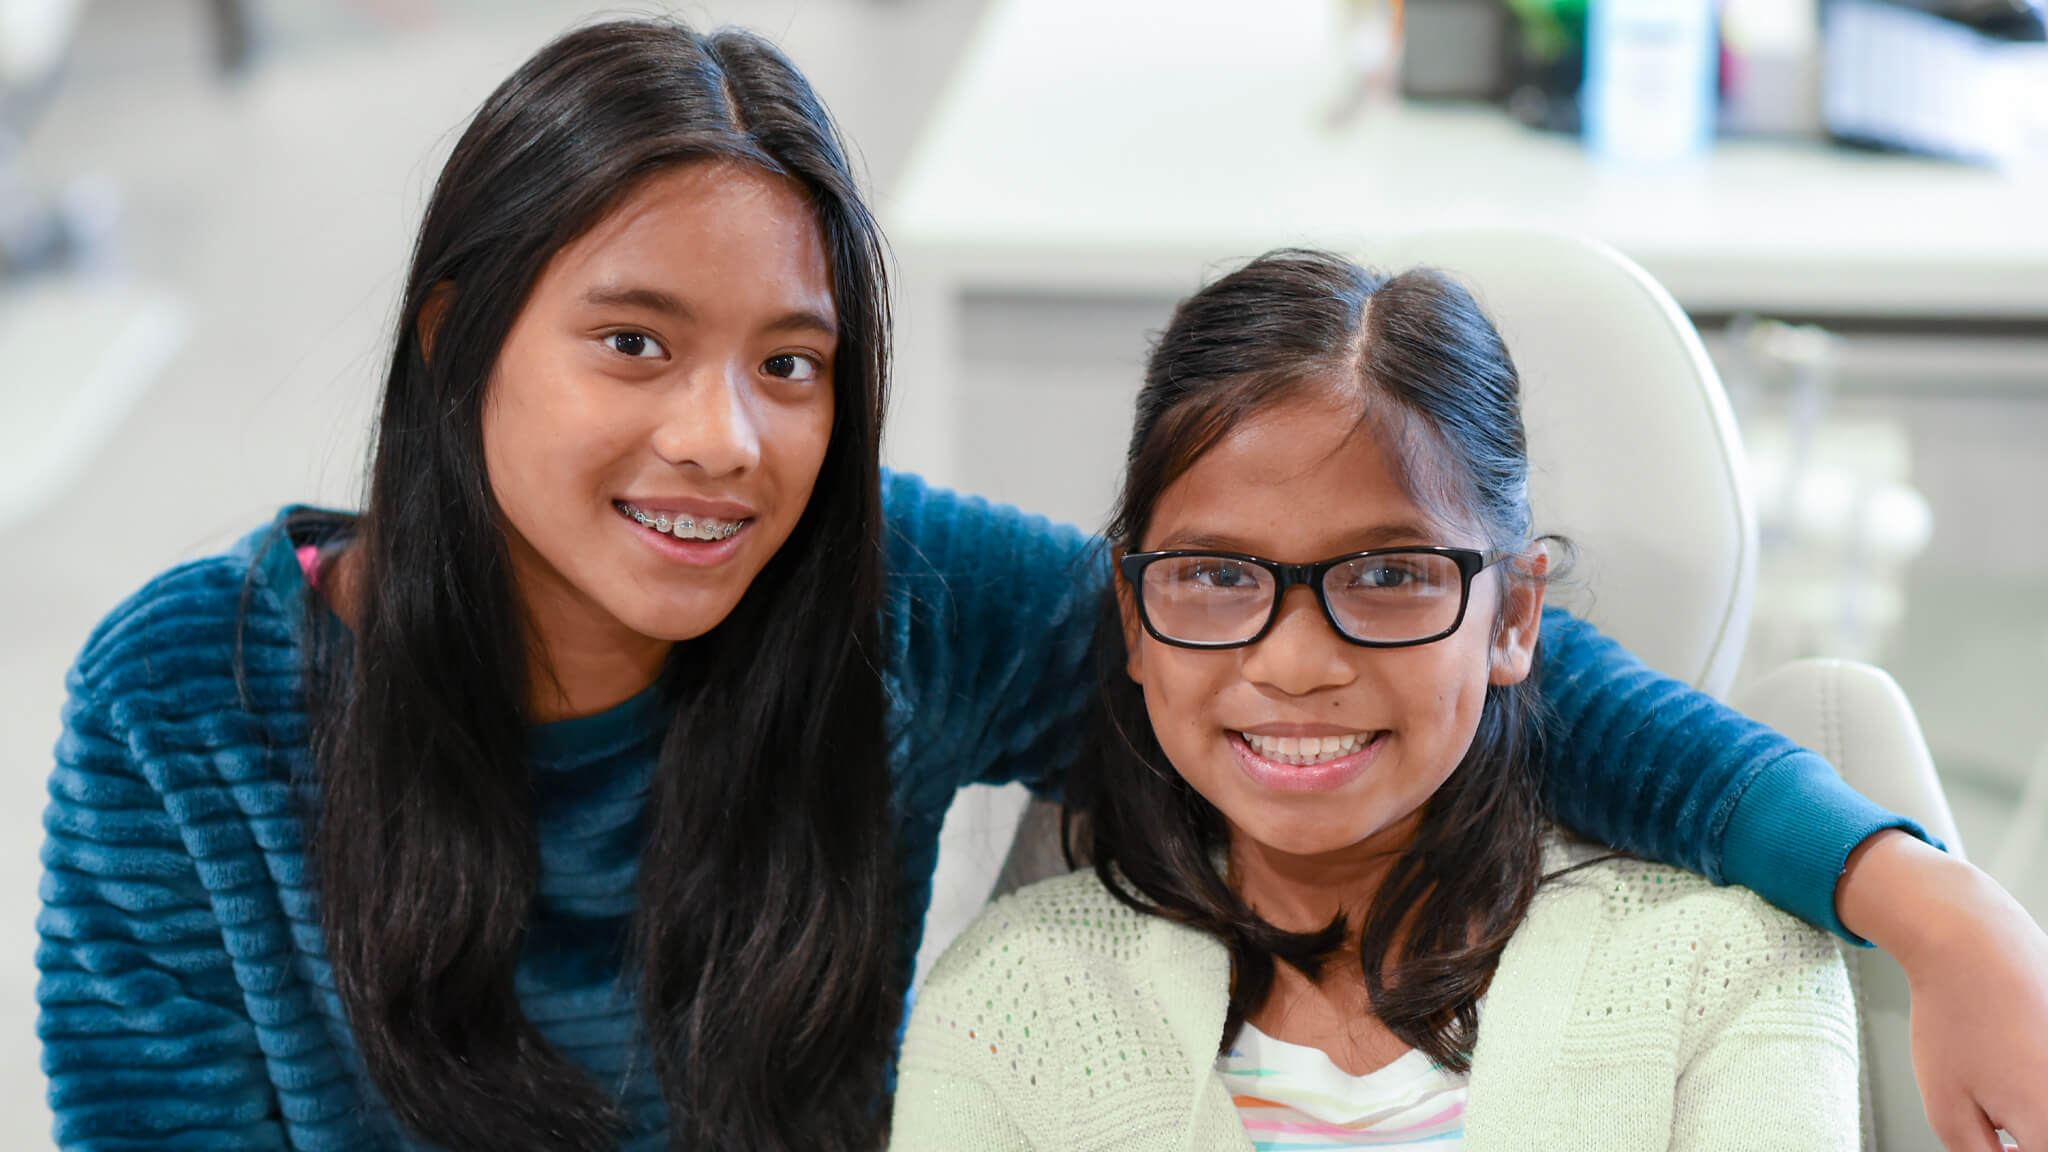 Girl with braces smiling with another girl who does not have braces